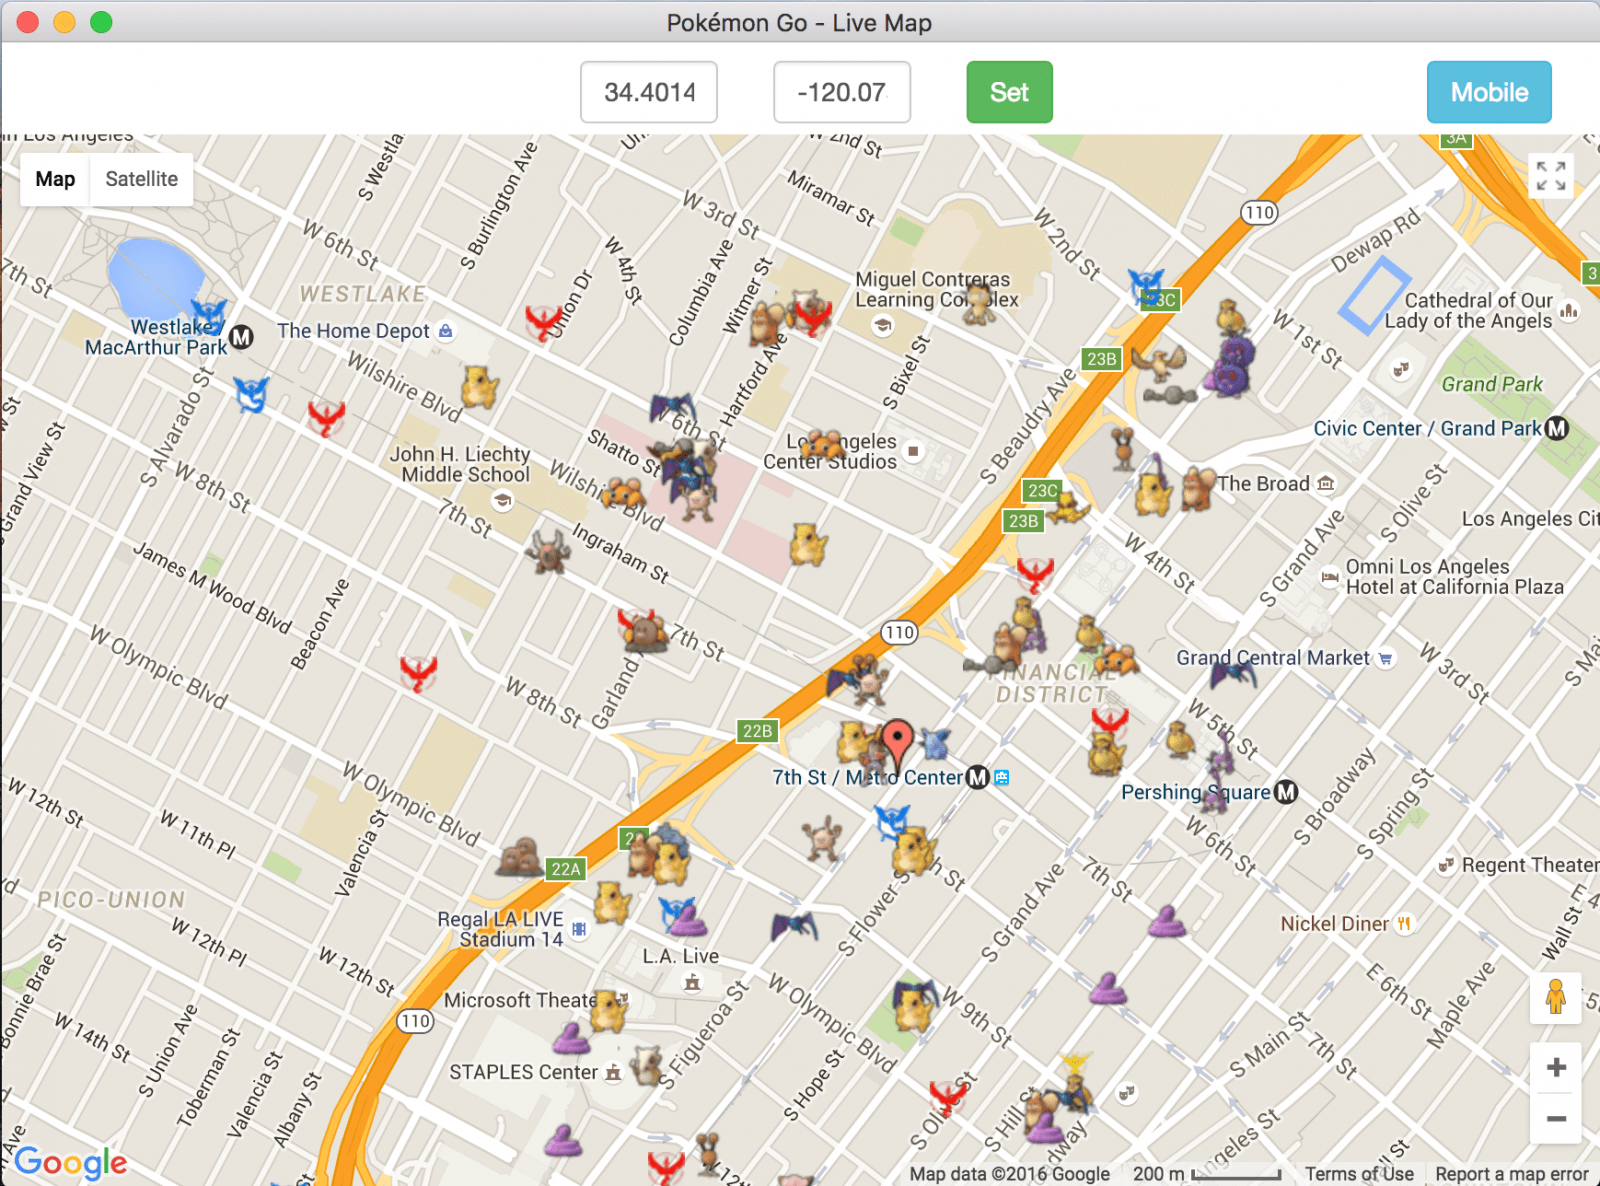 pokemongo desktop map  realsocialseo - pokemongo live map